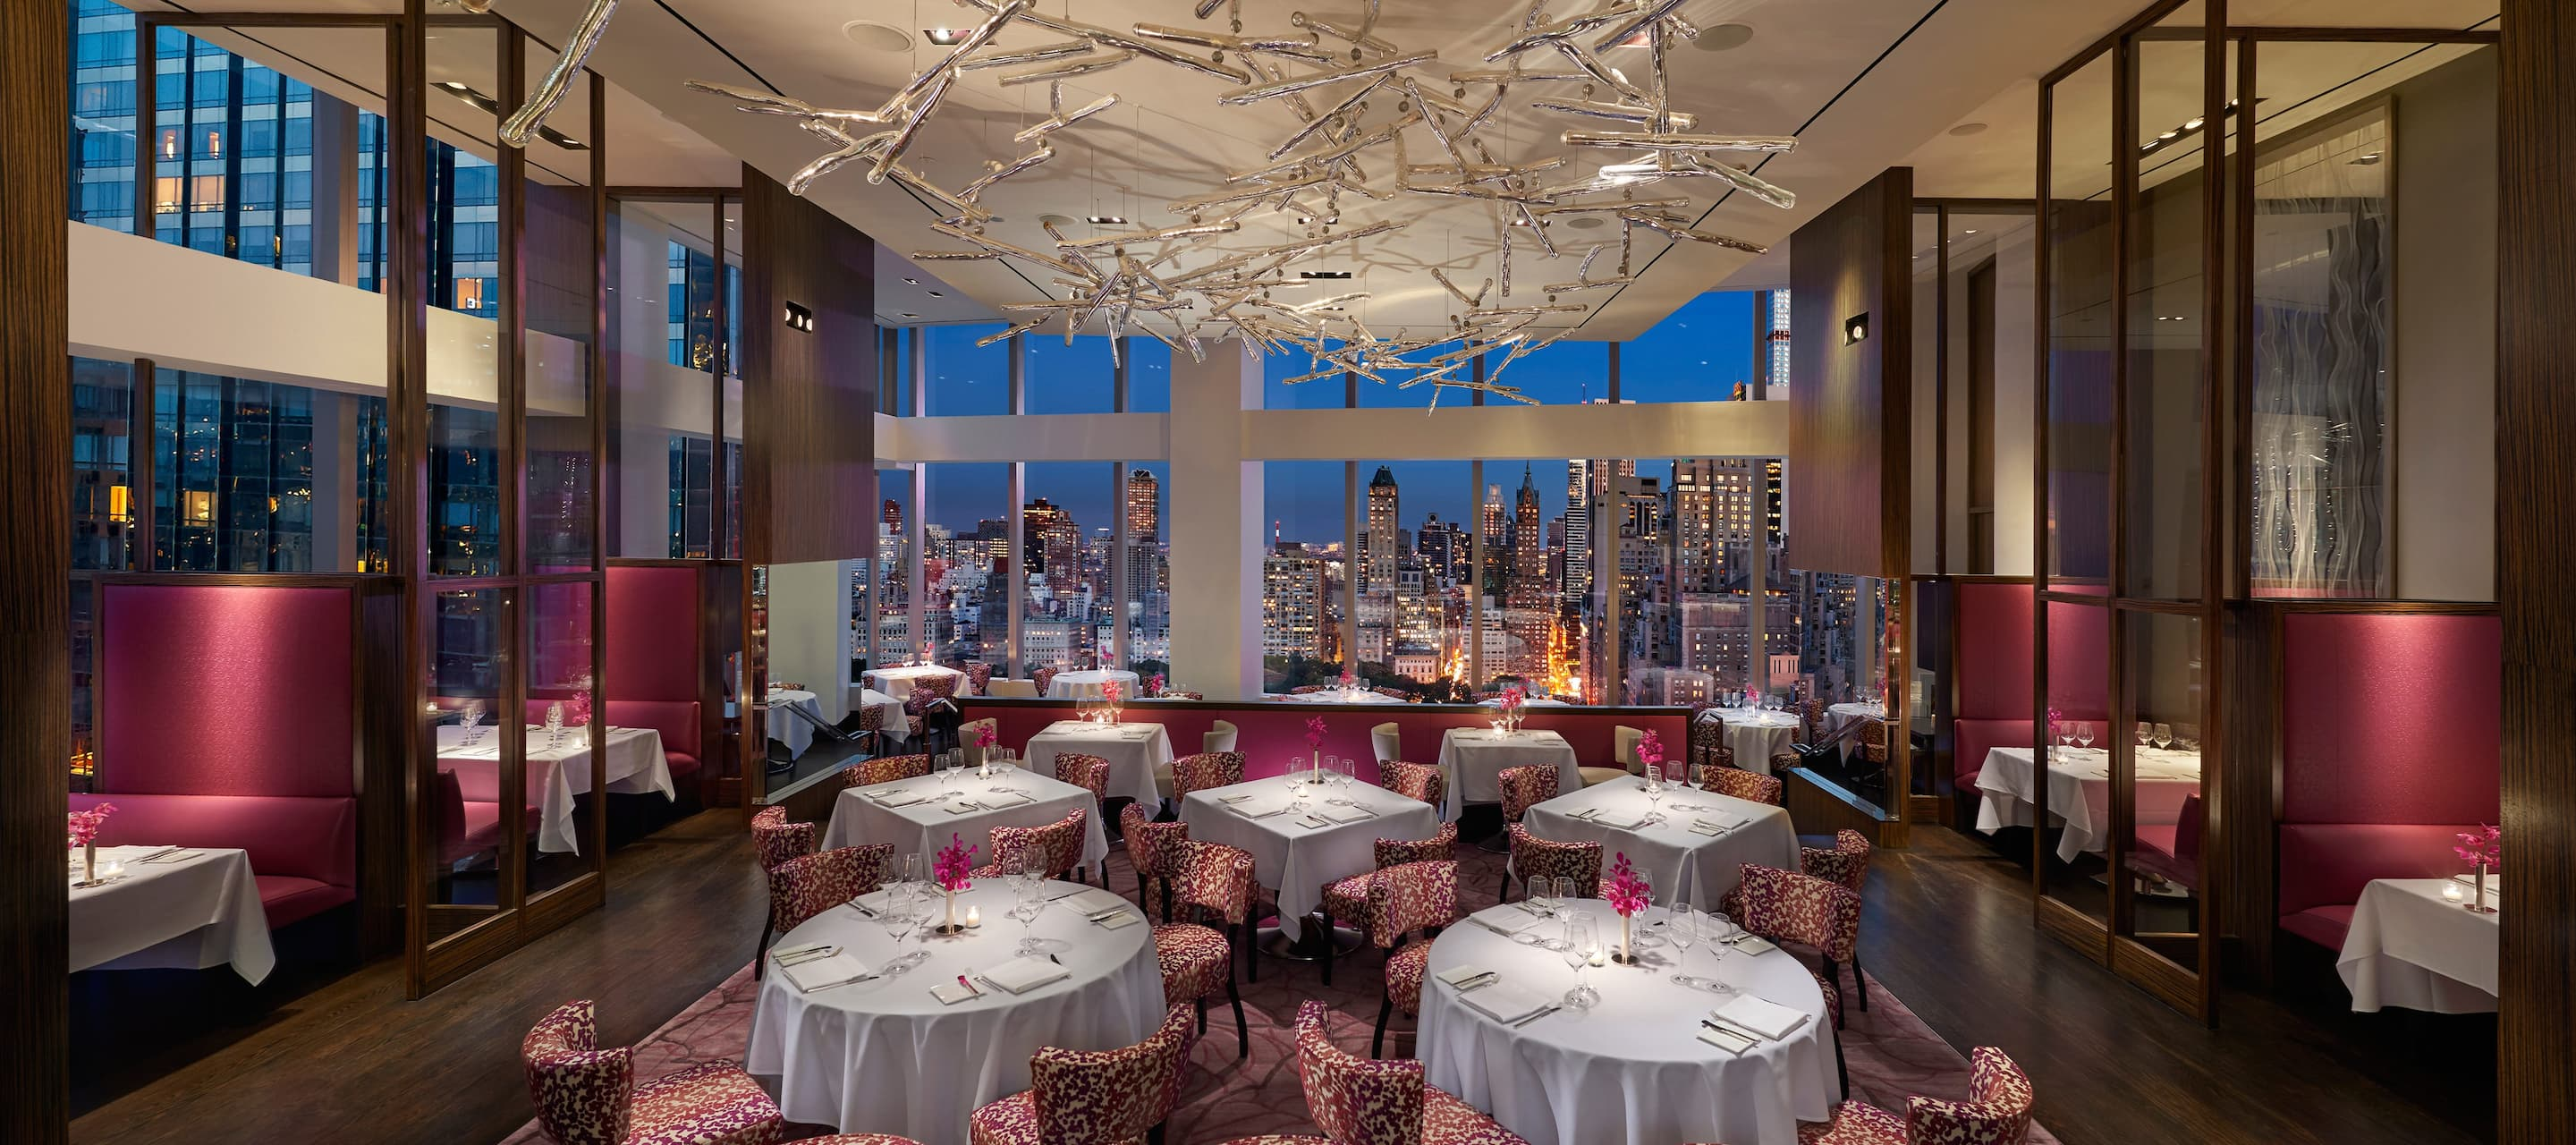 Asiate - Restaurants In Manhattan | Mandarin Oriental, New ...